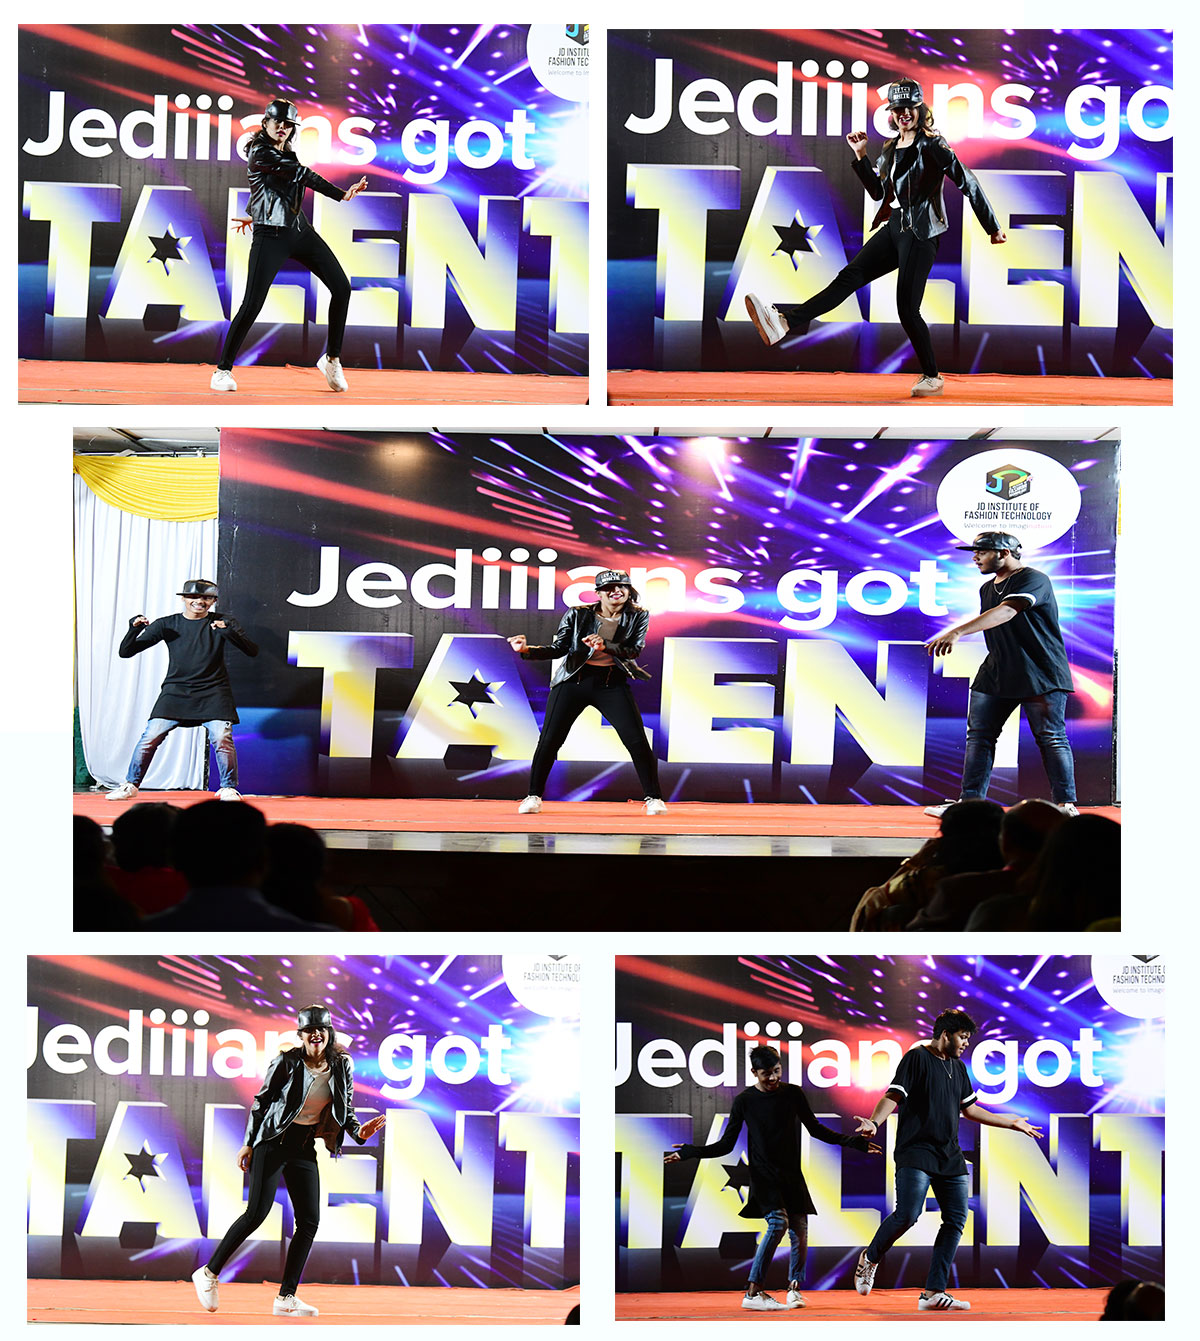 jediiians got talent jediiians got talent - jd got talent15 - JEDIIIANS Got Talent – If you have a flair, Flaunt it